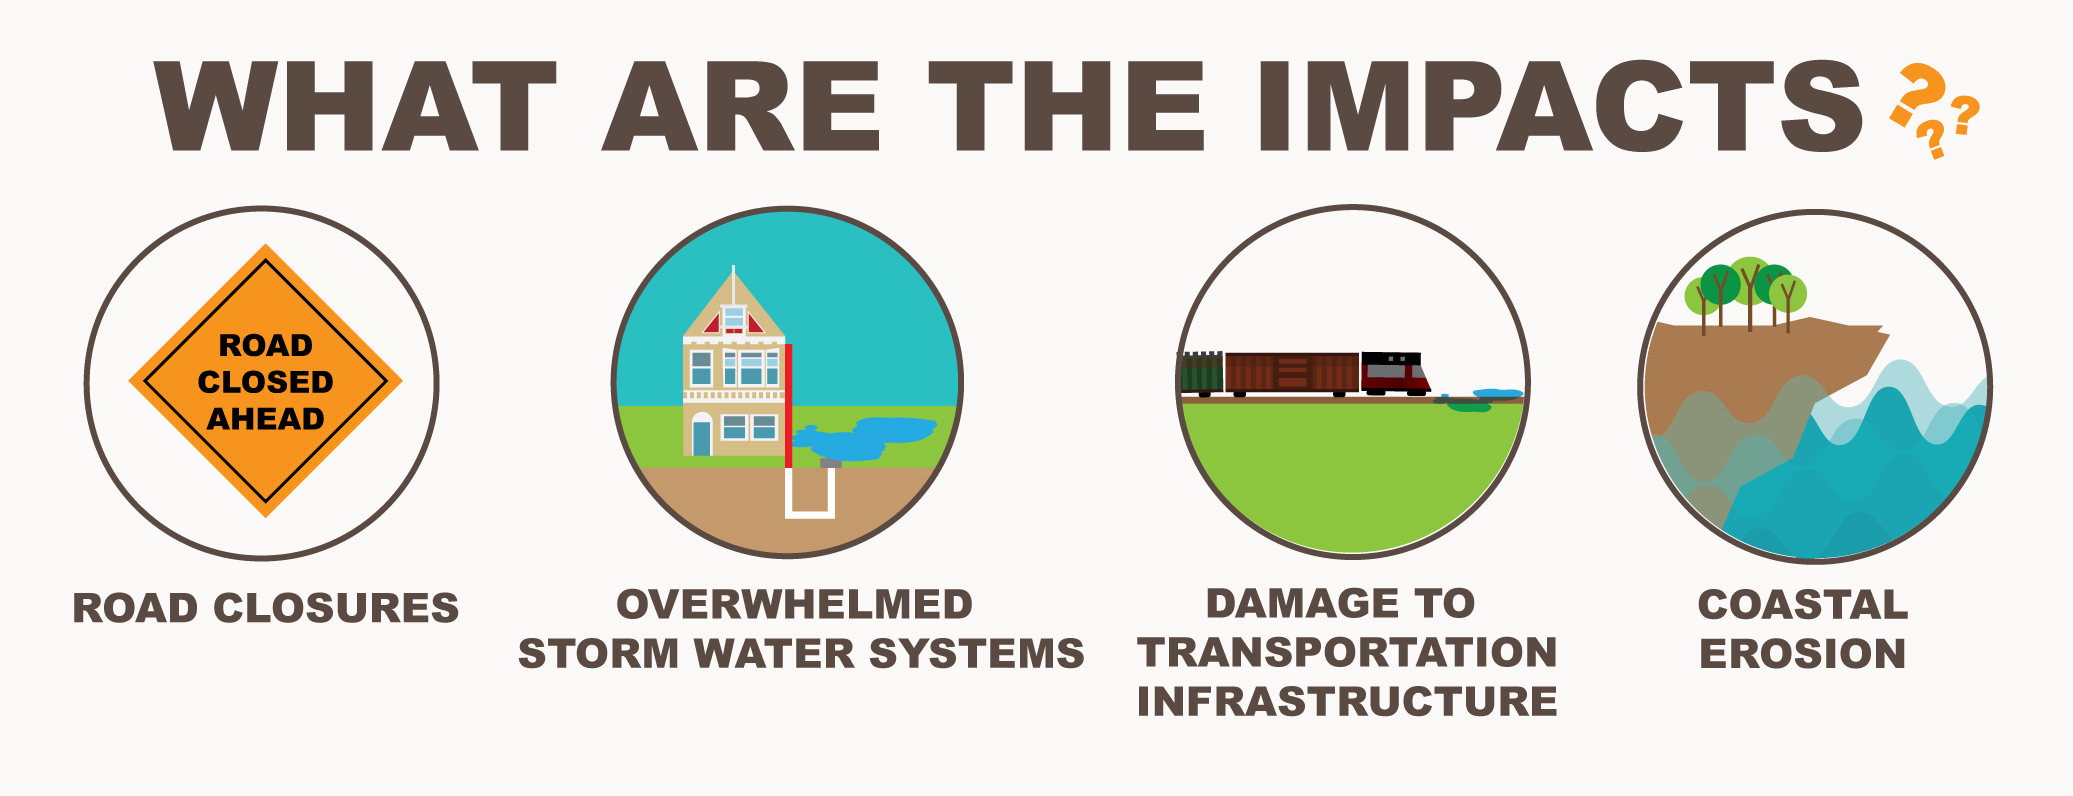 Graphic showing the impacts of nuisance flooding, including road closures, overwhelmed storm water systems, transporation infrastructure, and coastal erosion.